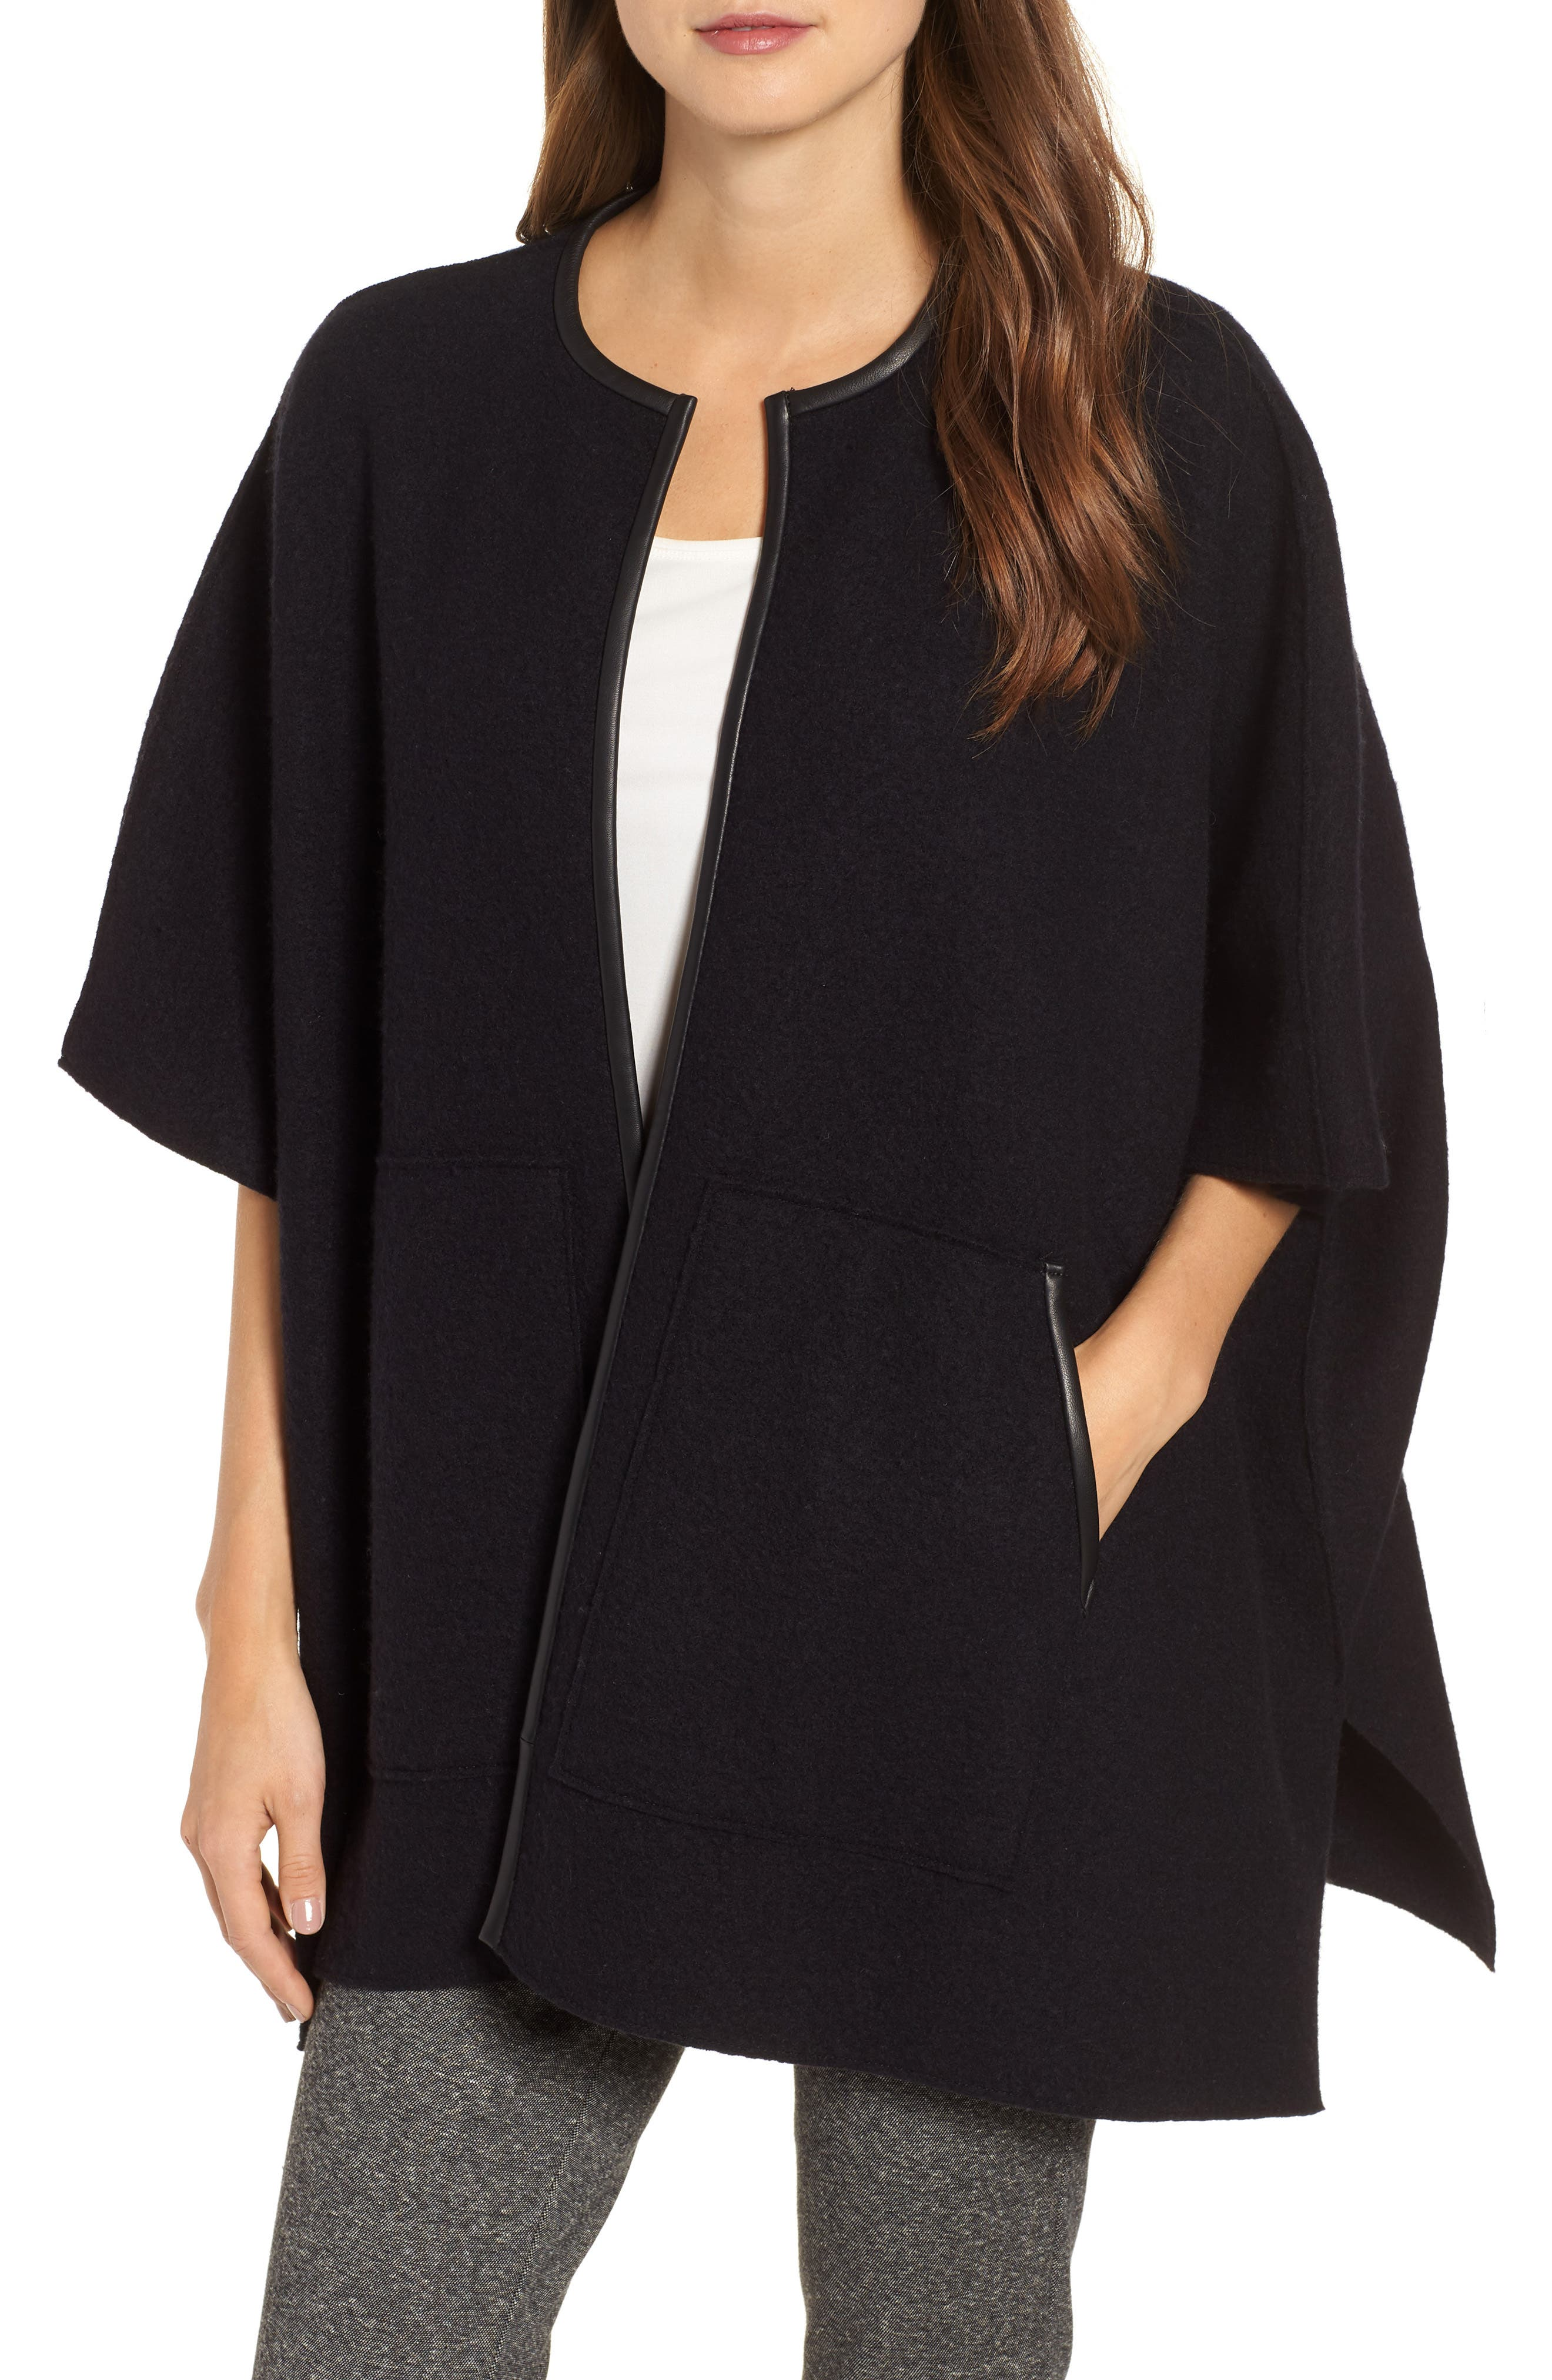 Boiled Wool Poncho Jacket with Leather Trim,                             Main thumbnail 1, color,                             BLACK